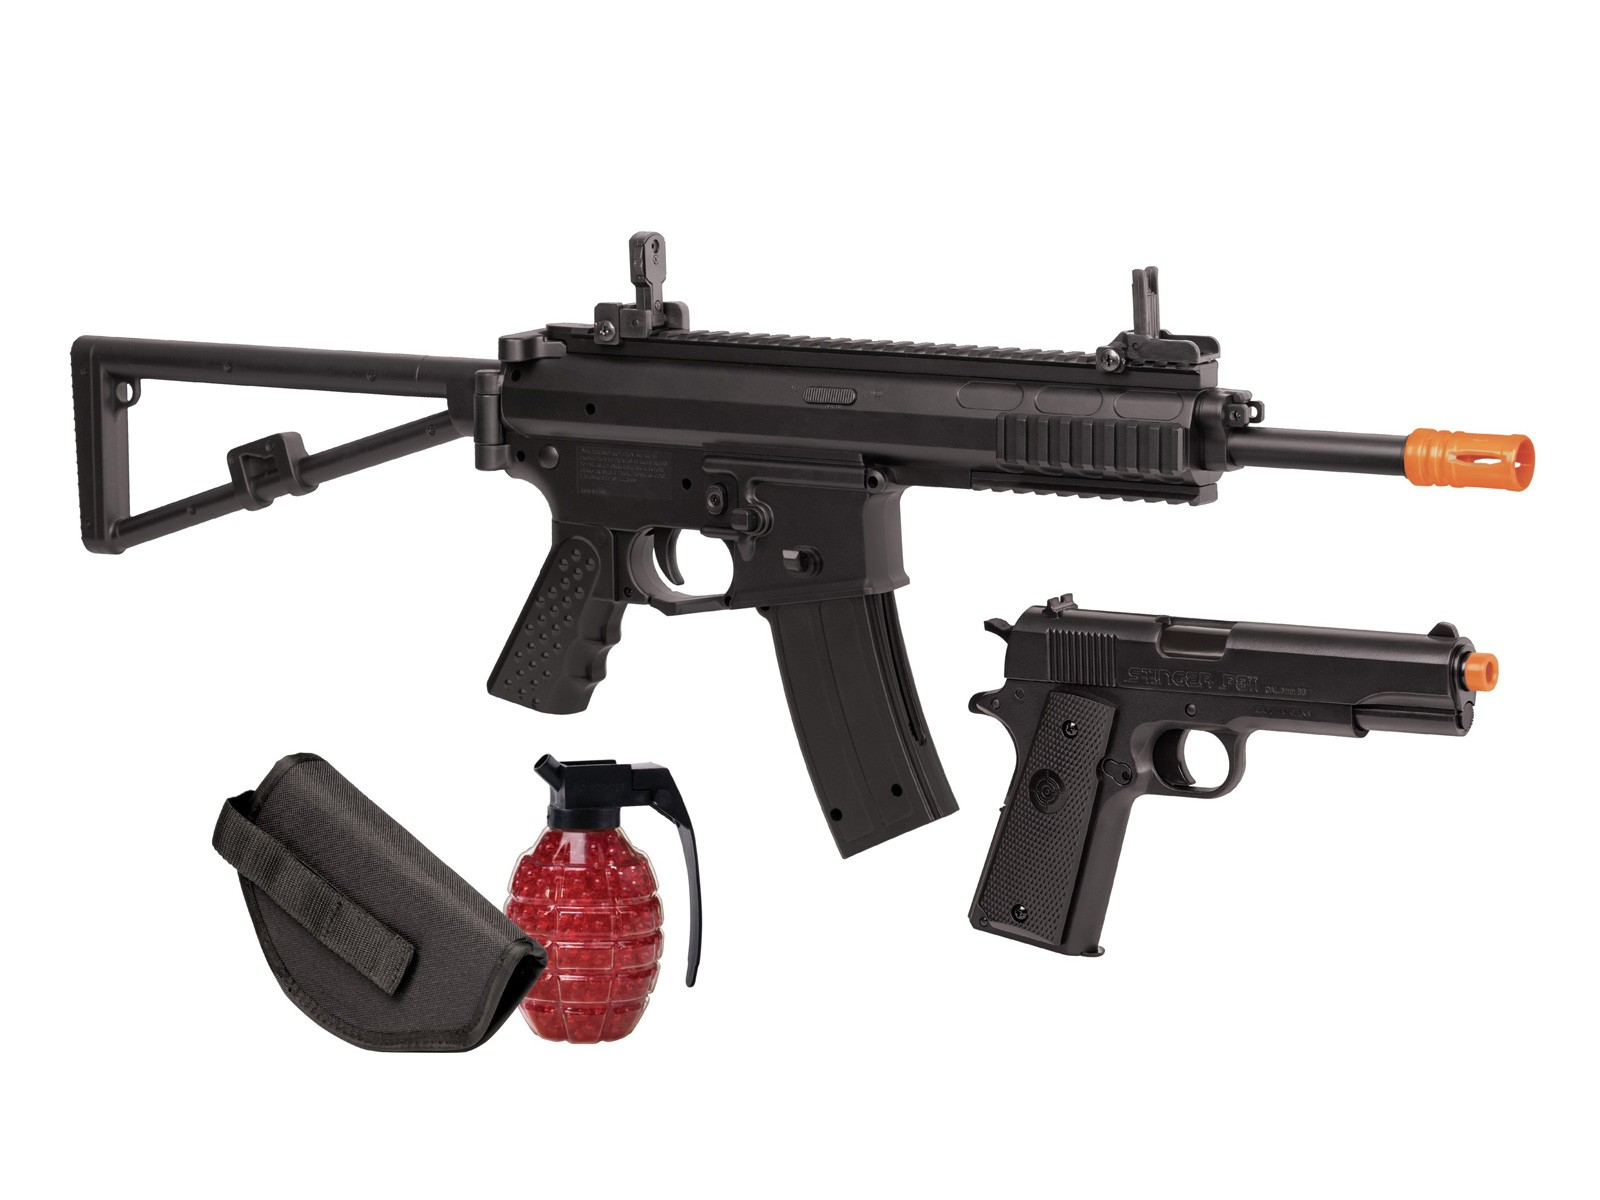 Crosman AREKT Elite Commado Airsoft Rifle & Pistol Kit, Blac